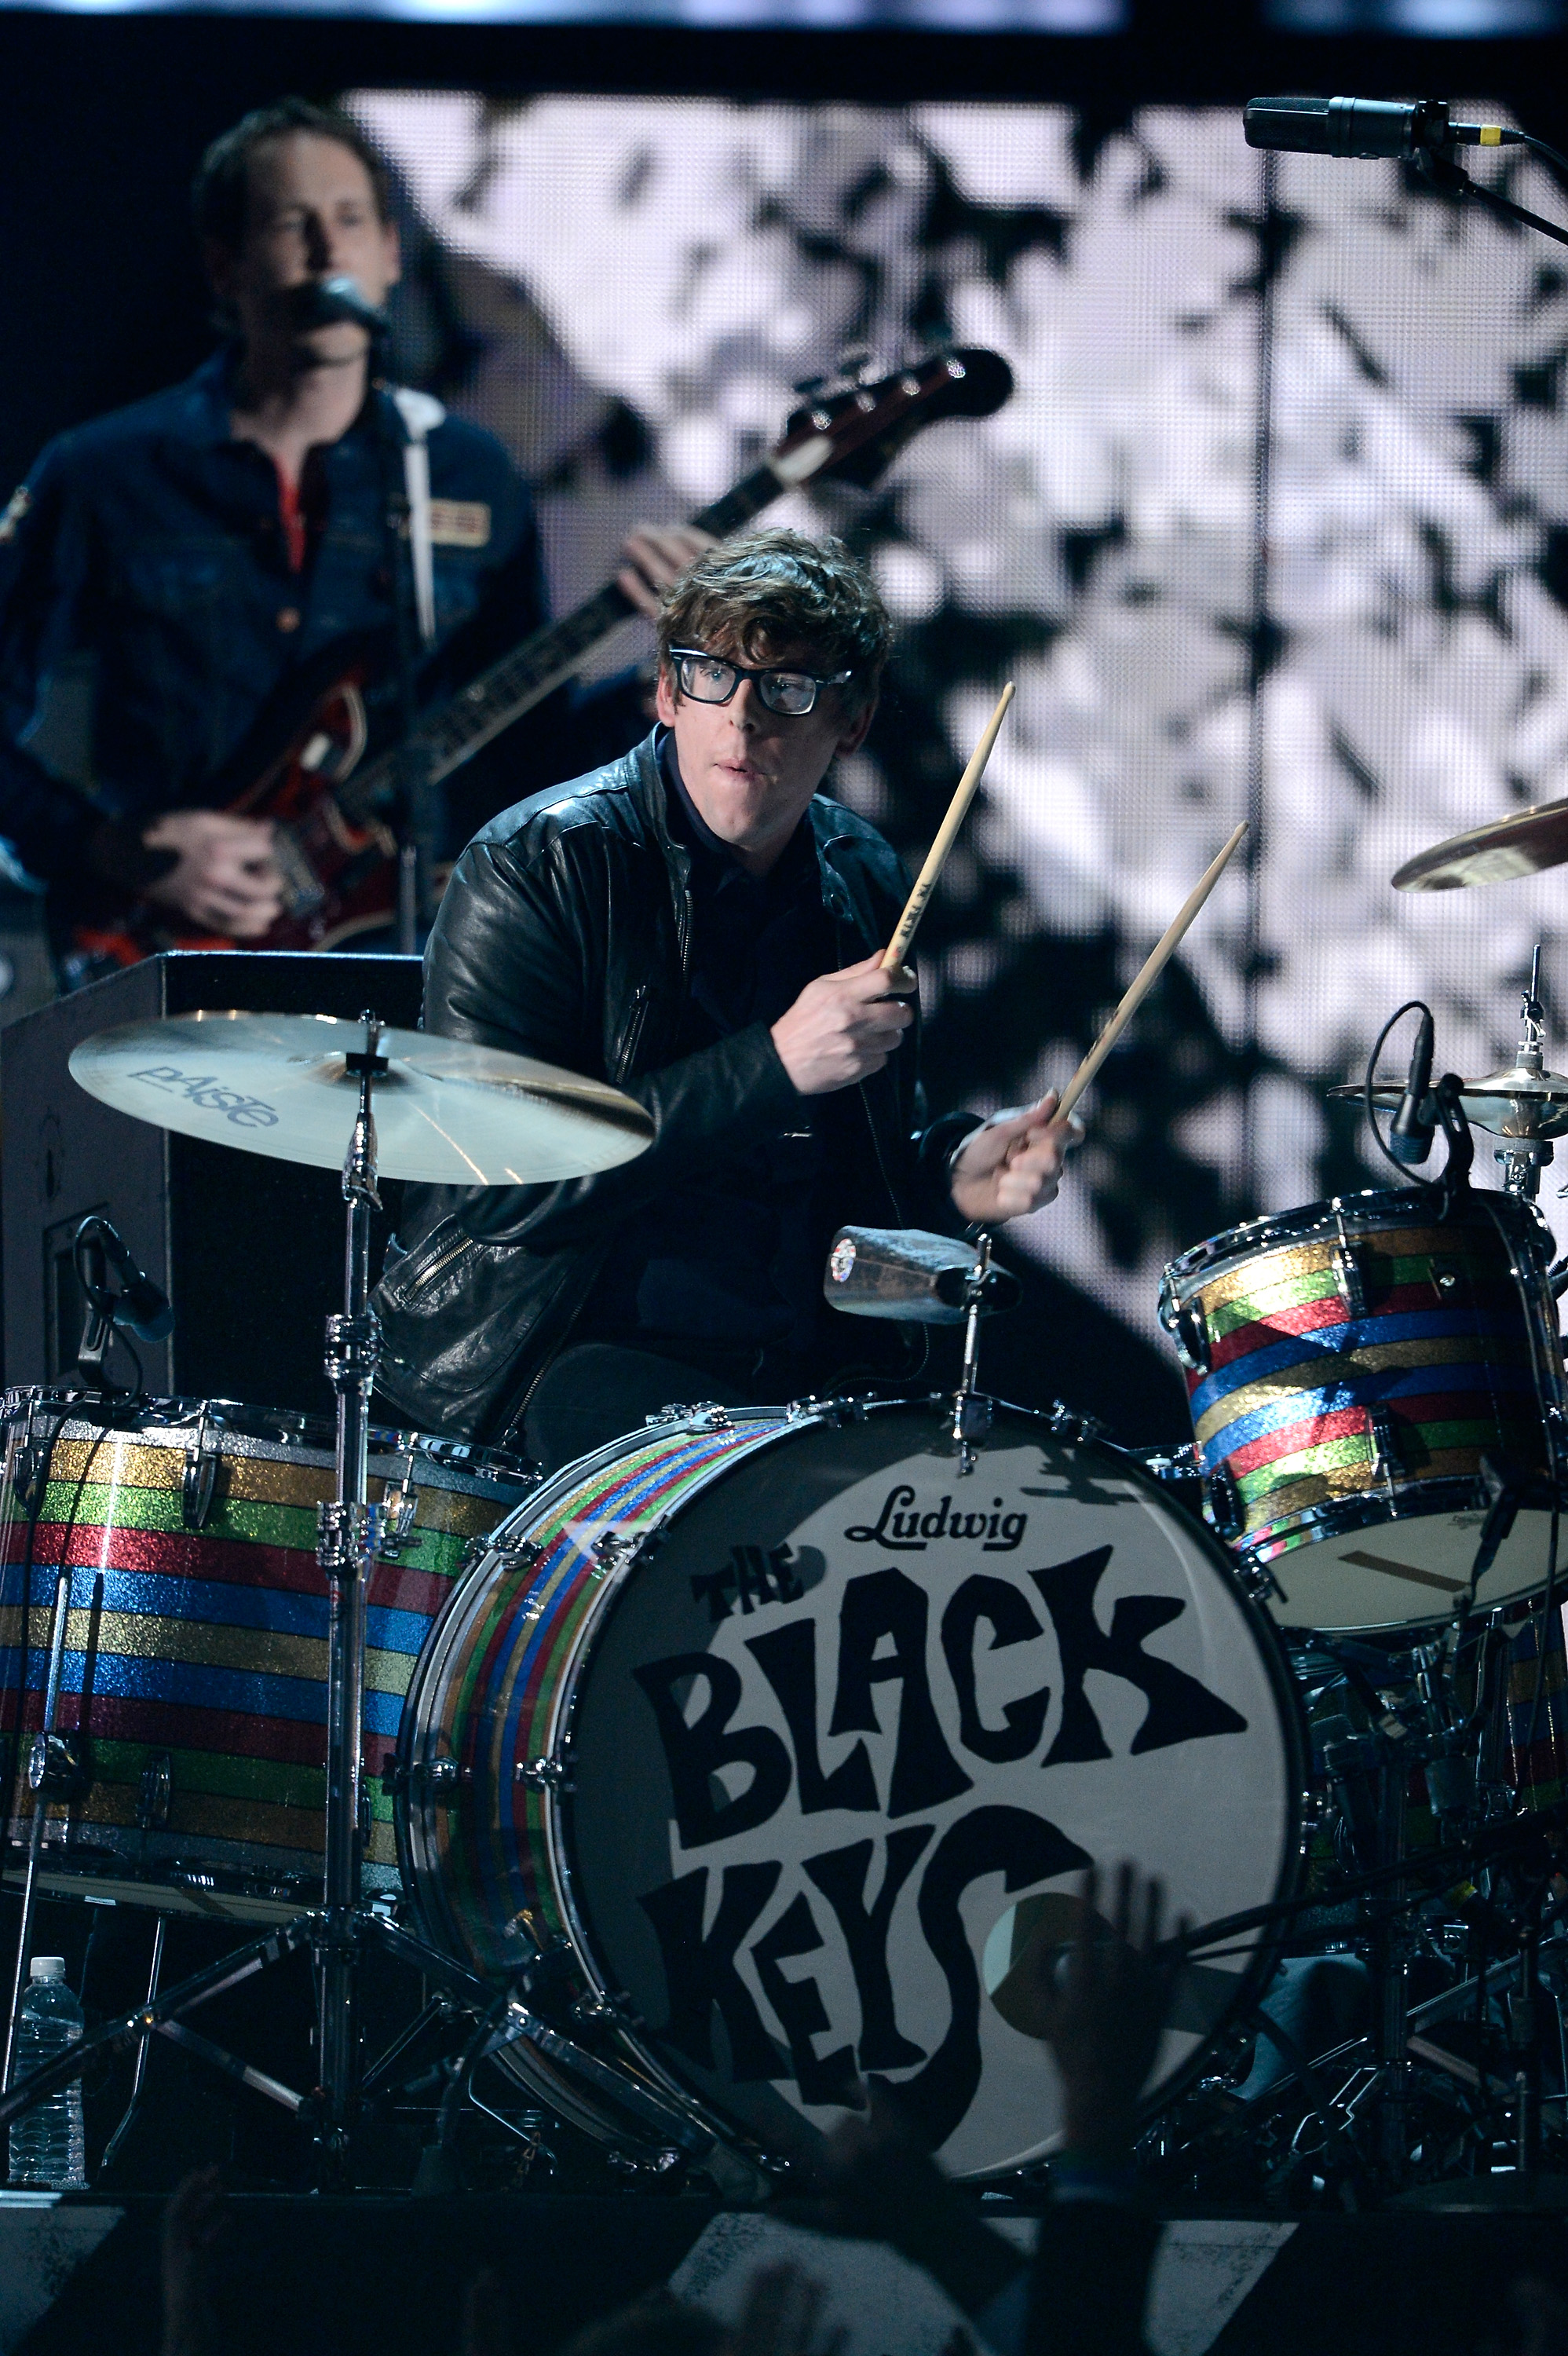 Patrick Carney from the The Black Keys beat the drums on stage.